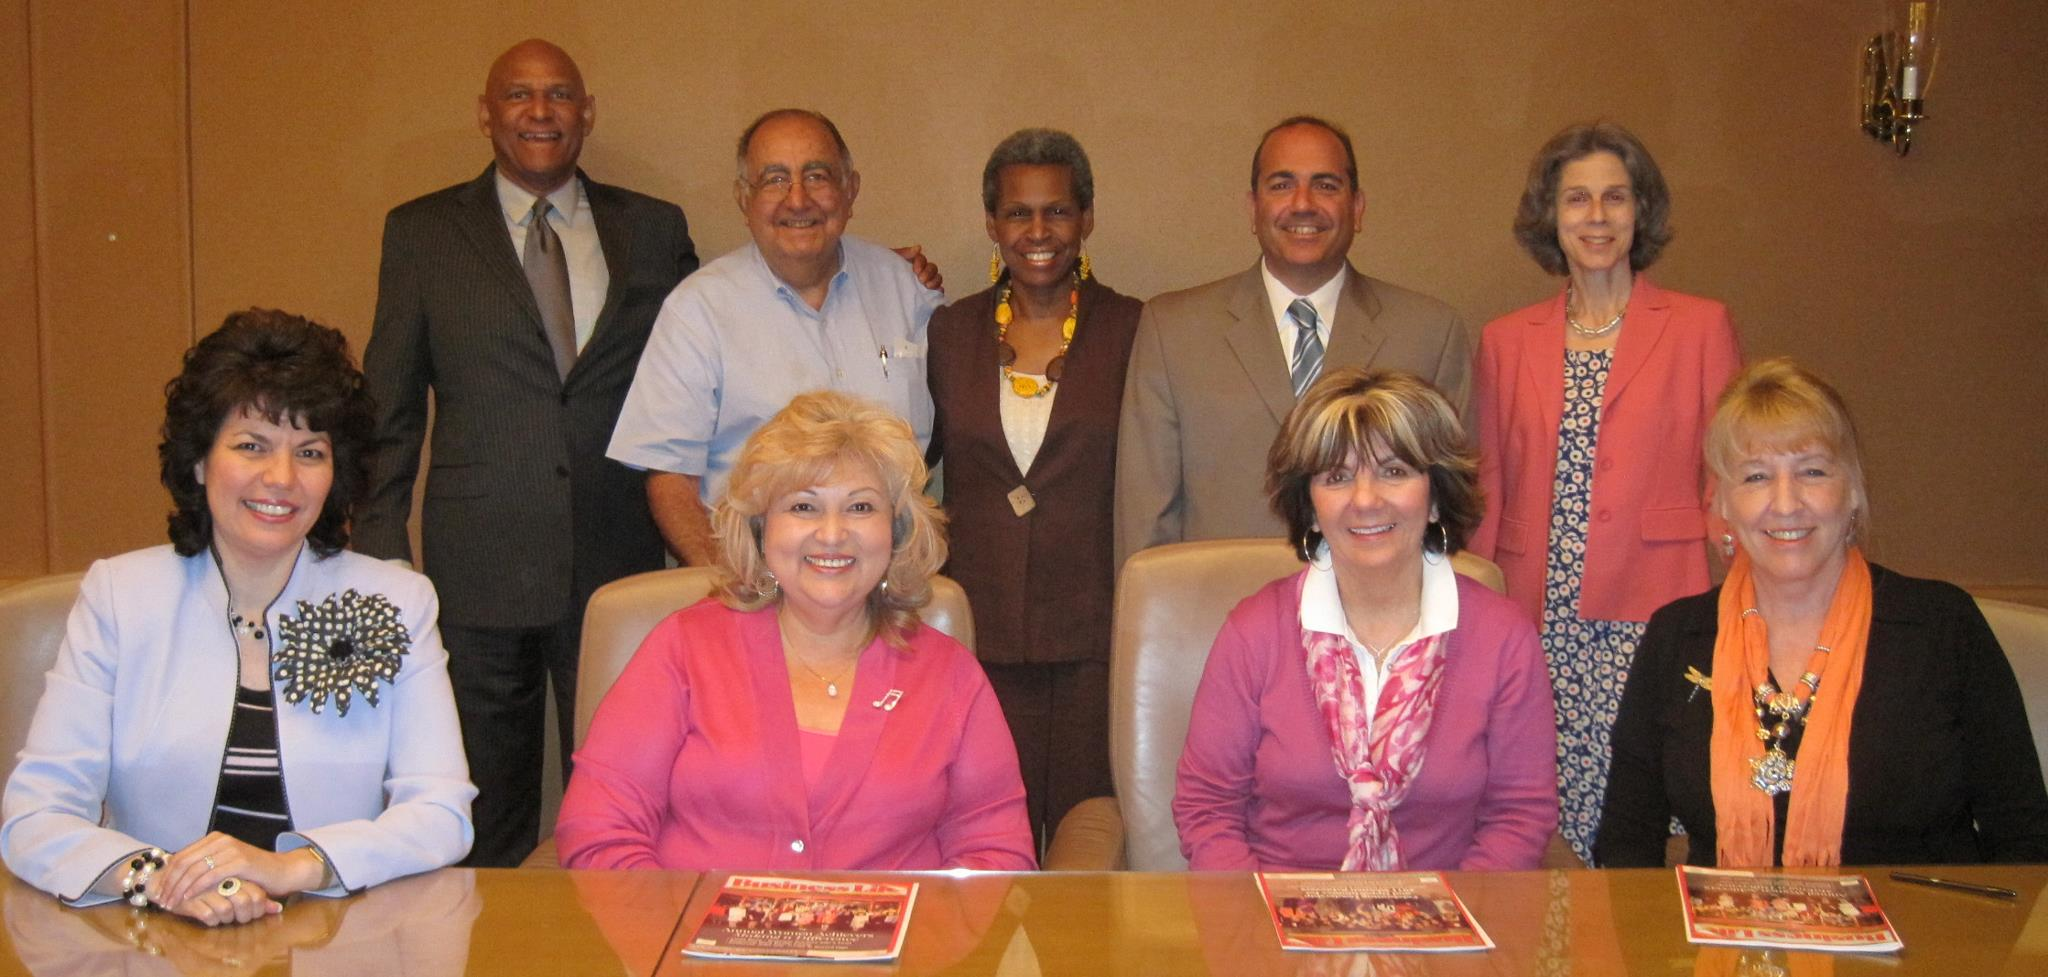 2012 Women Achievers Conference committee meeting